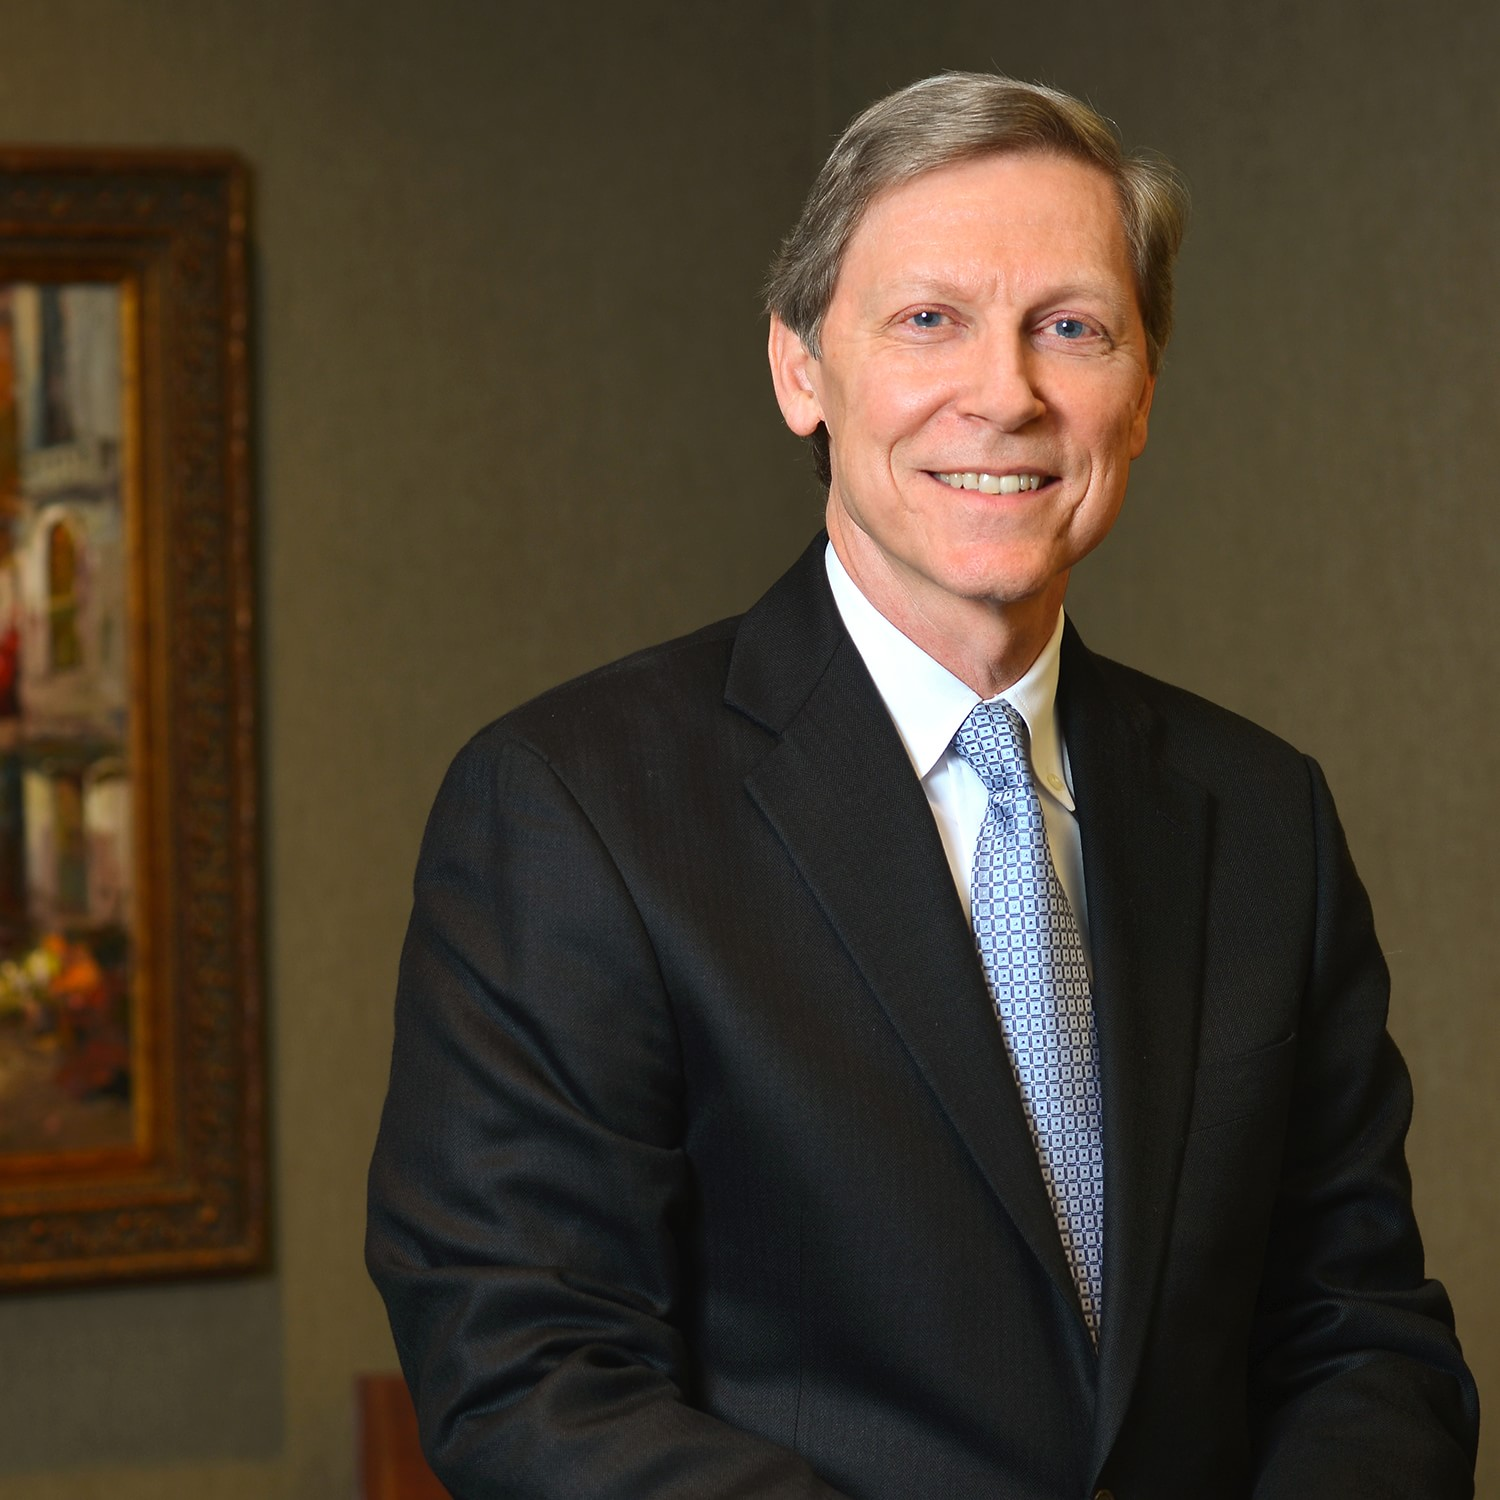 Jerry Faulkner, CPA